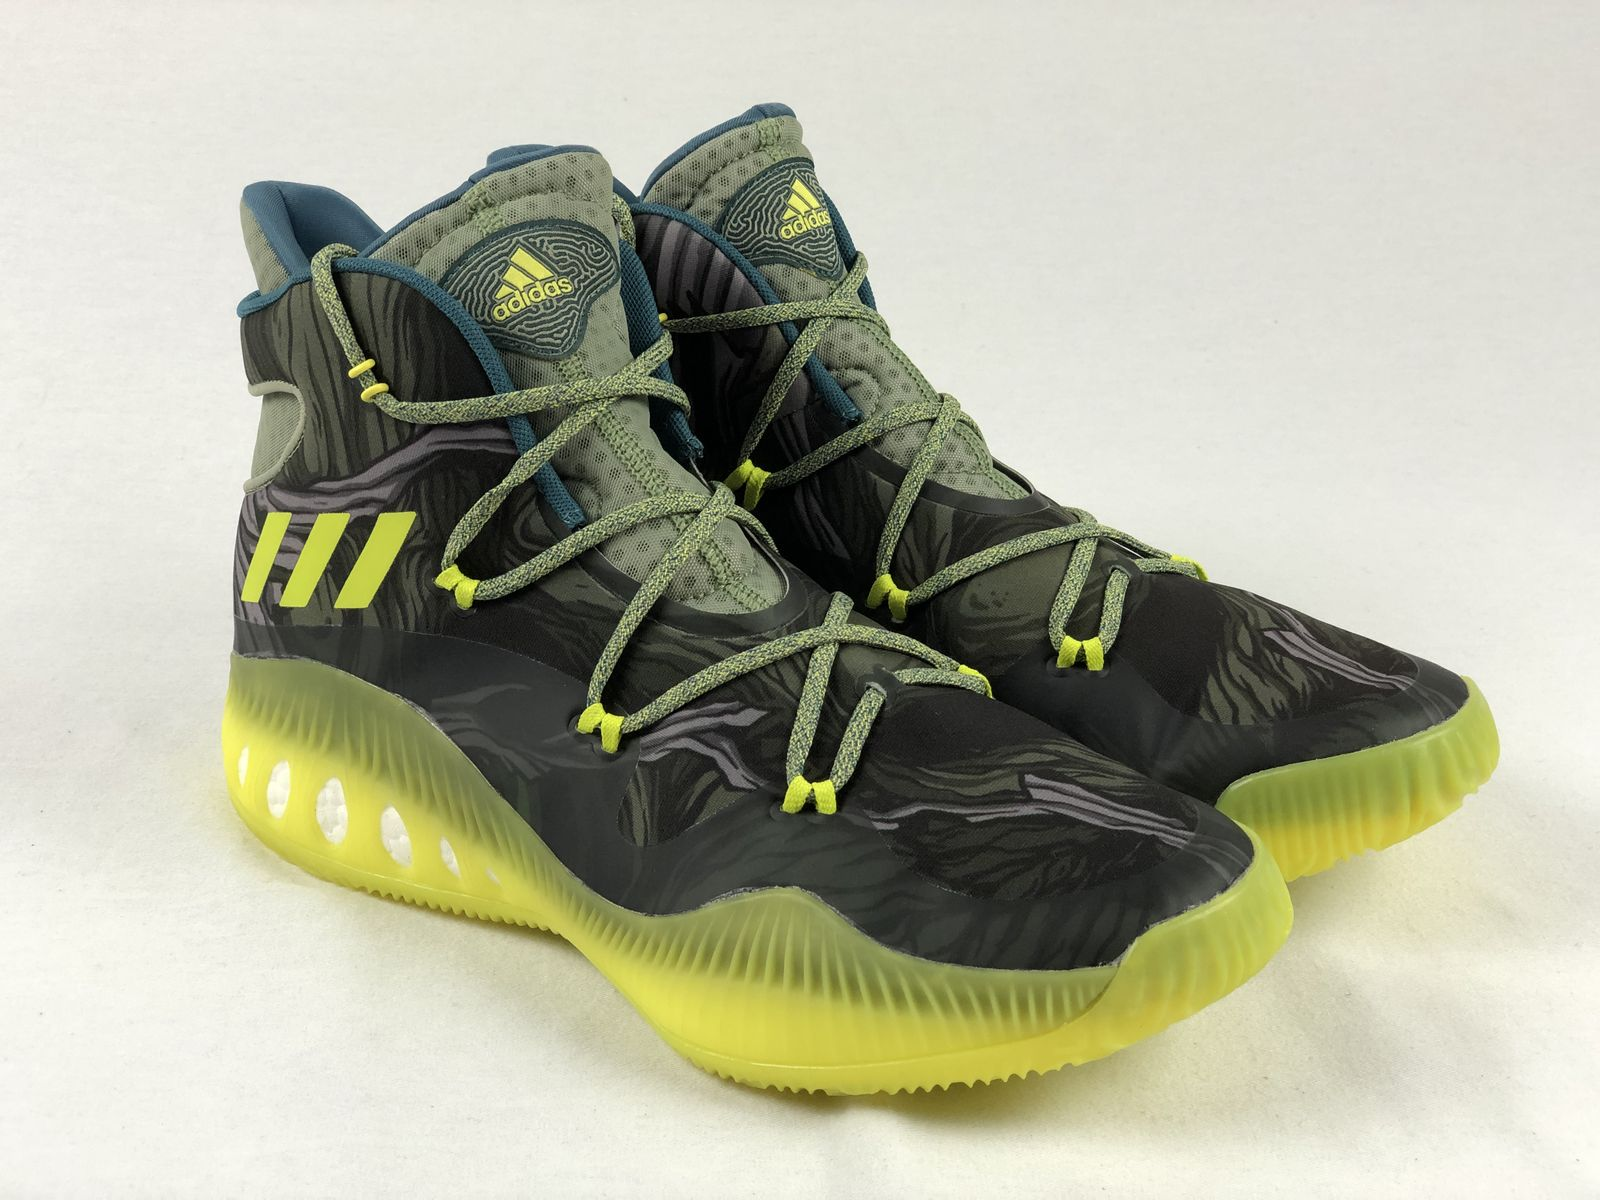 on sale f2684 acd1e Details about NEW adidas Crazy Explosive - Green Black Basketball Shoes ( Men s 13.5)